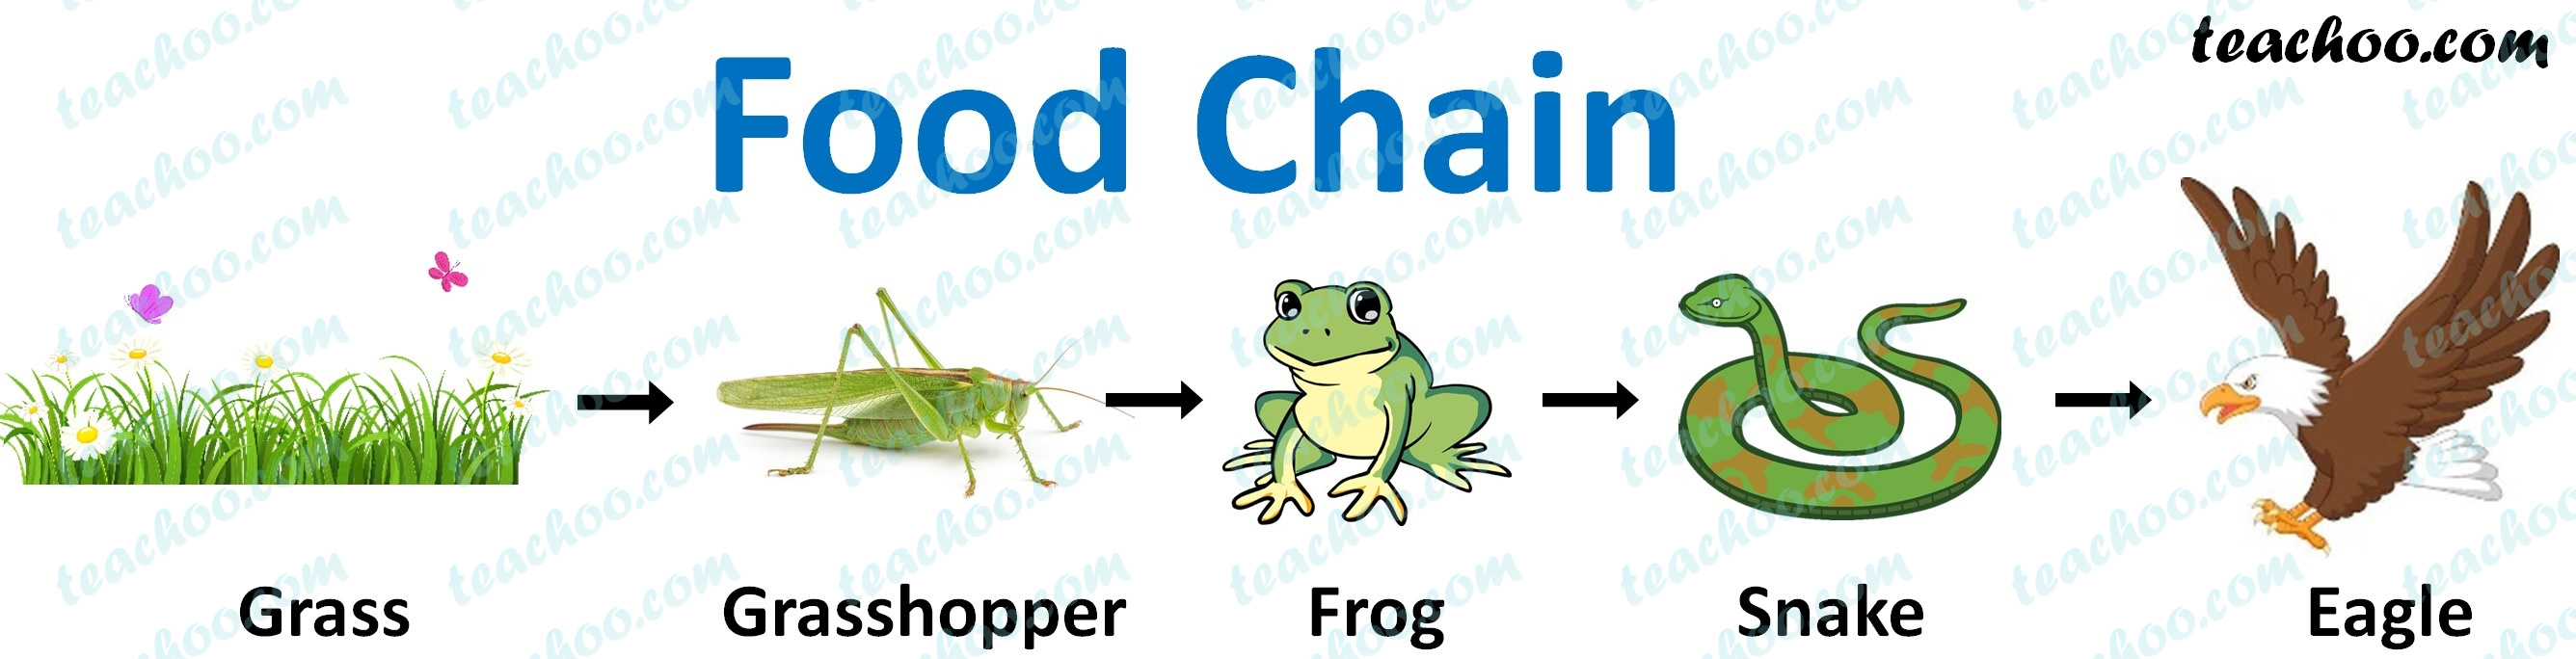 food-chain-(imp-ques)---teachoo.jpg